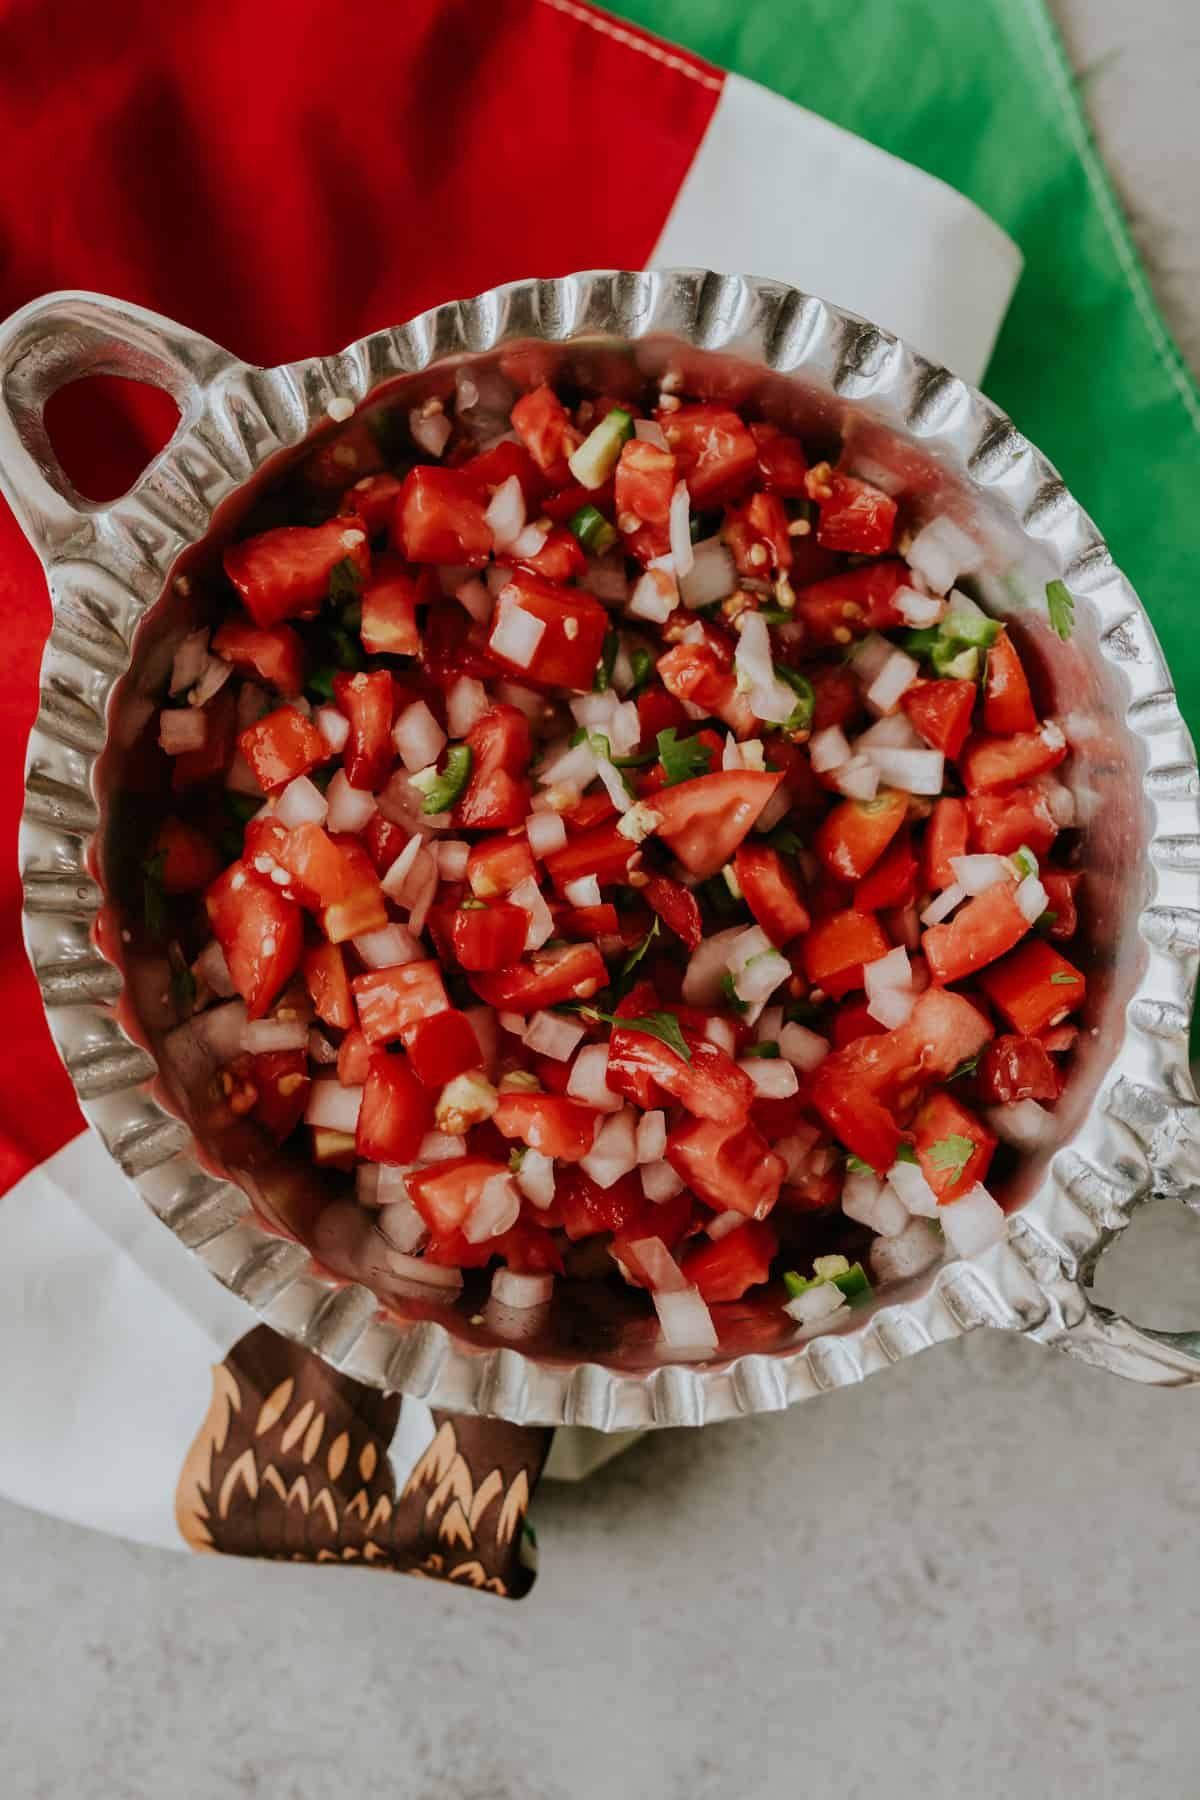 Freshly chopped Pico de Gallo salsa in a silver bowl with a red, white, and green Mexican flag underneath